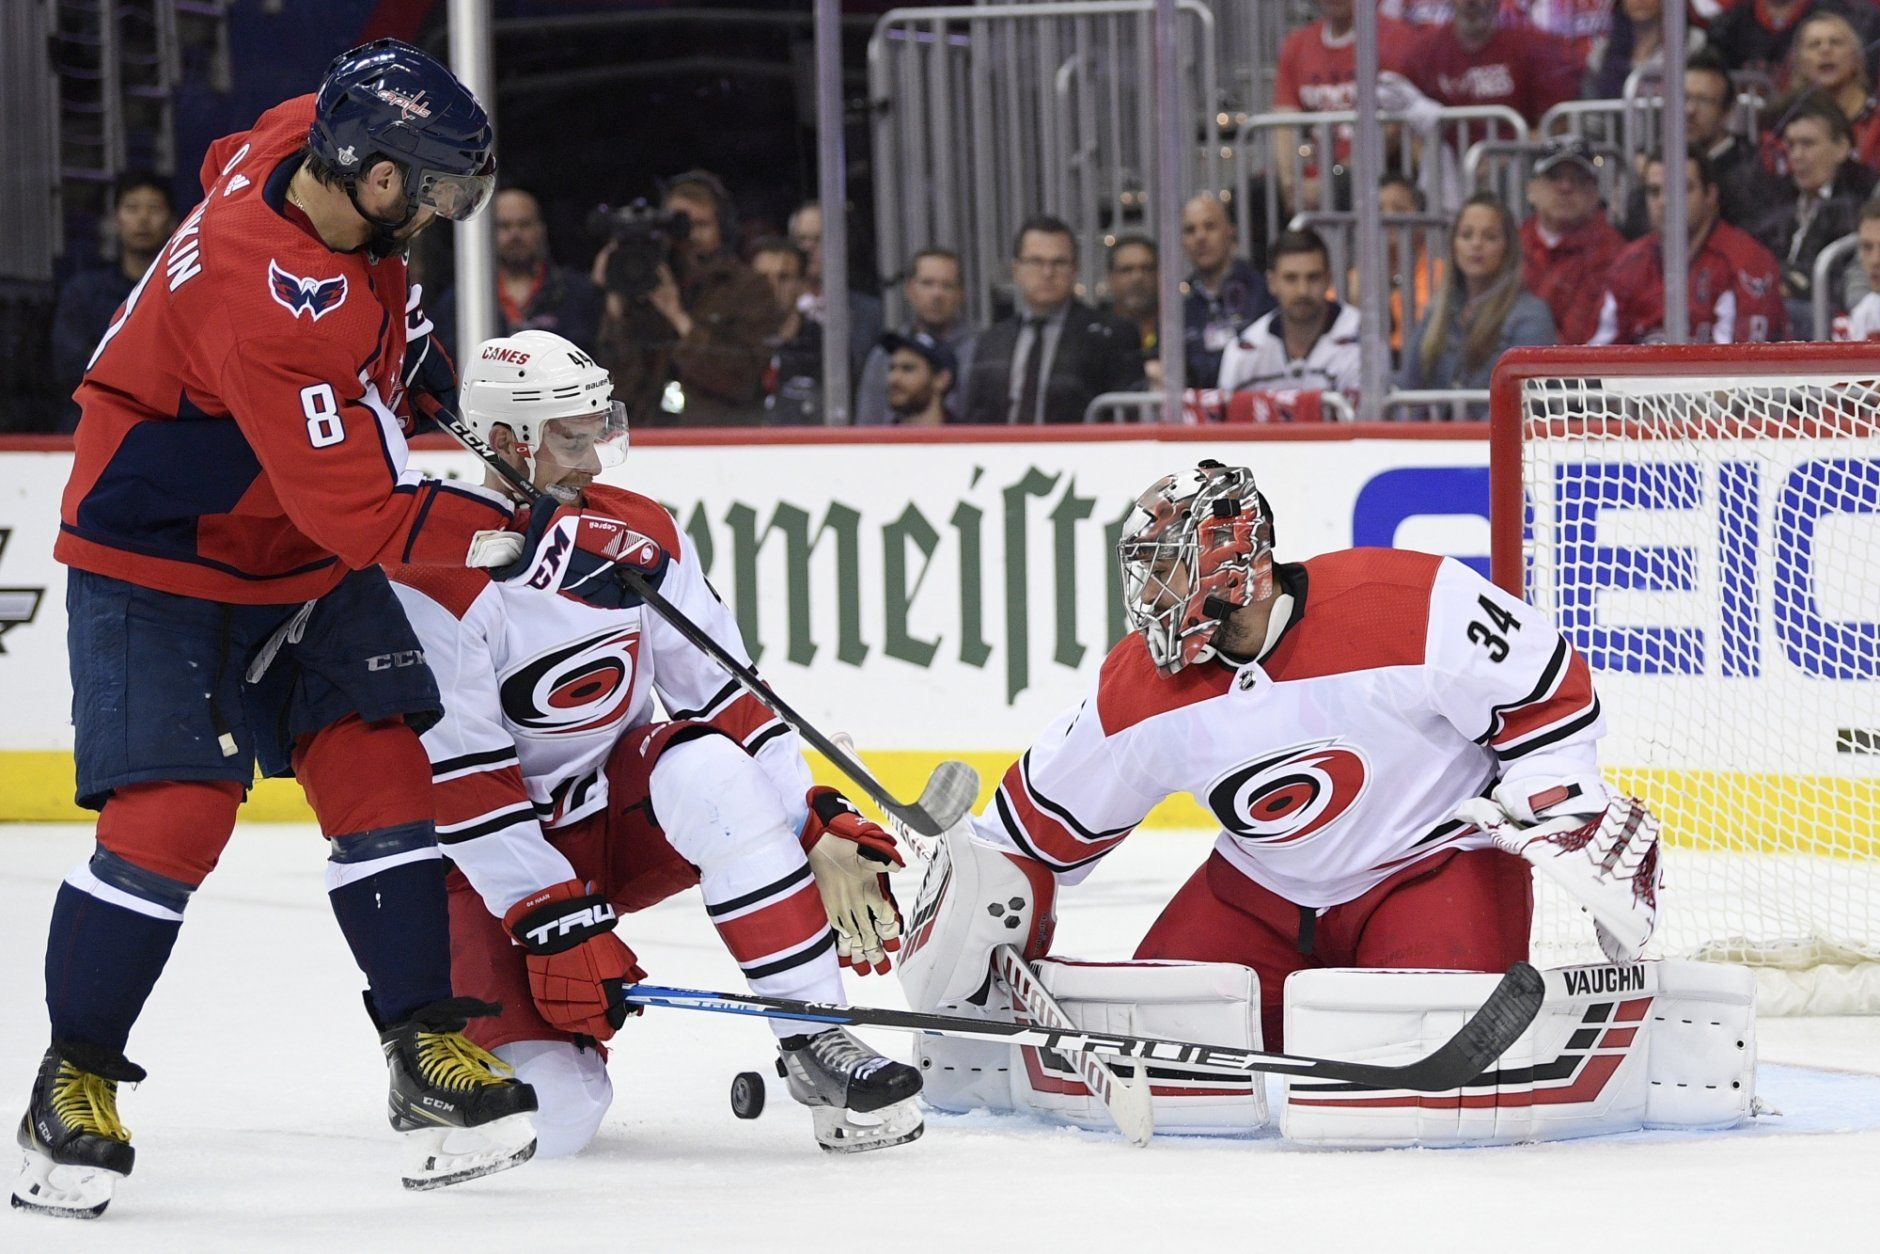 Washington Capitals left wing Alex Ovechkin (8), of Russia, battles for the puck against Carolina Hurricanes defenseman Calvin de Haan (44) and goaltender Petr Mrazek (34), of the Czech Republic, during the second period of Game 7 of an NHL hockey first-round playoff series, Wednesday, April 24, 2019, in Washington. (AP Photo/Nick Wass)